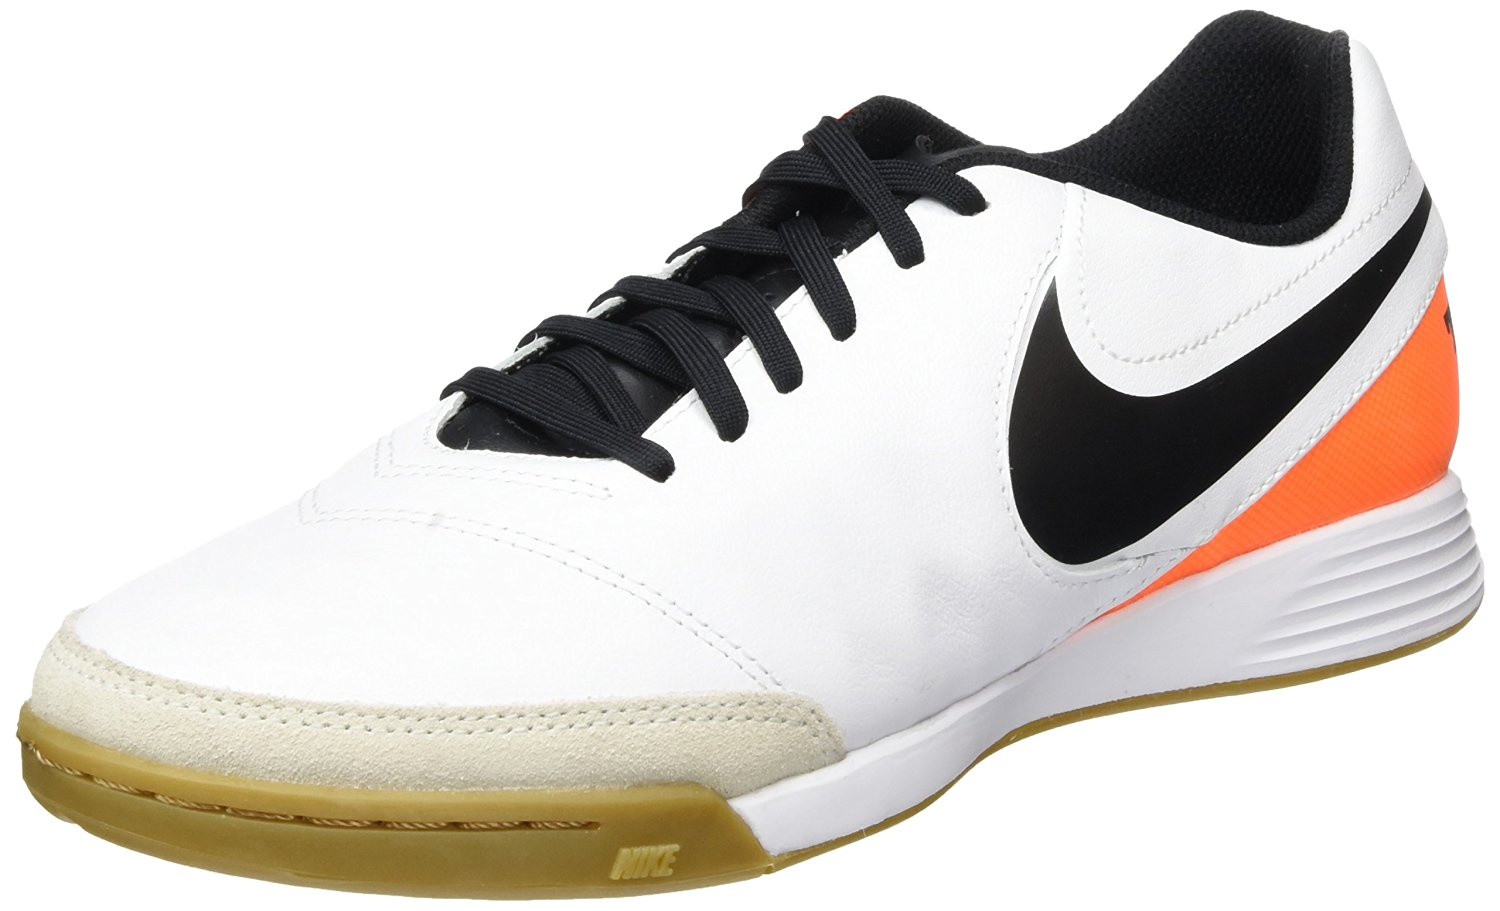 c76f6adc8f2 Get Quotations · Nike Tiempo Genio II Leather IC Indoor Soccer Shoes